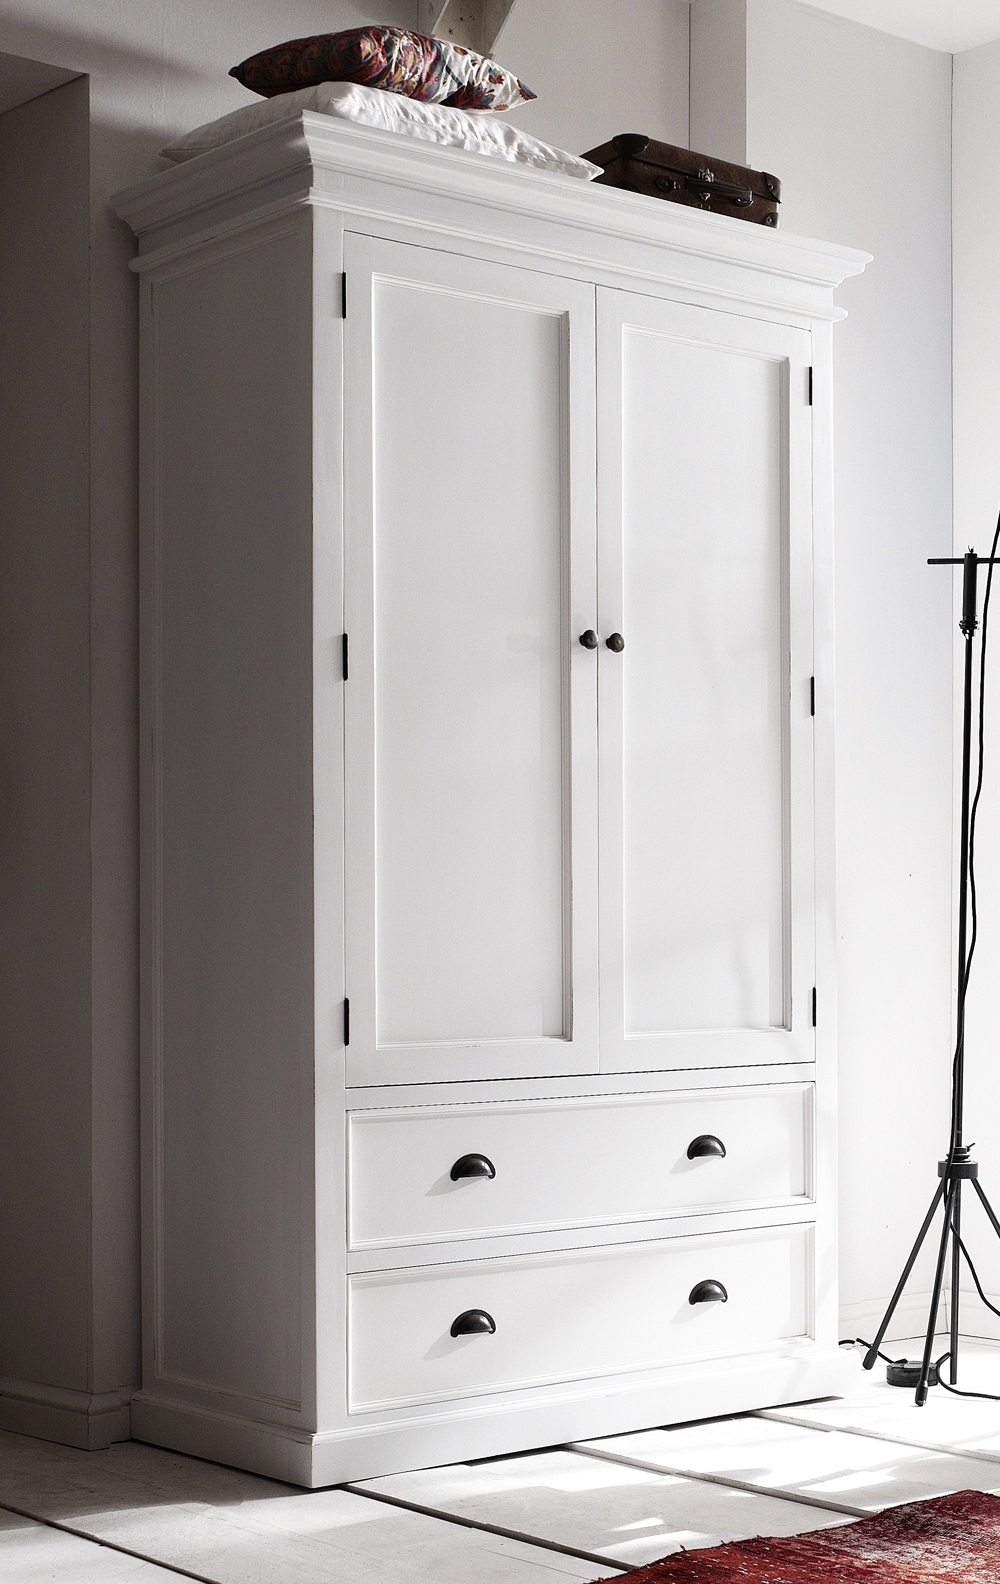 Newest White Wardrobes With Drawers Inside With The Best Solution To Practical But Elegant Design, The (View 11 of 15)